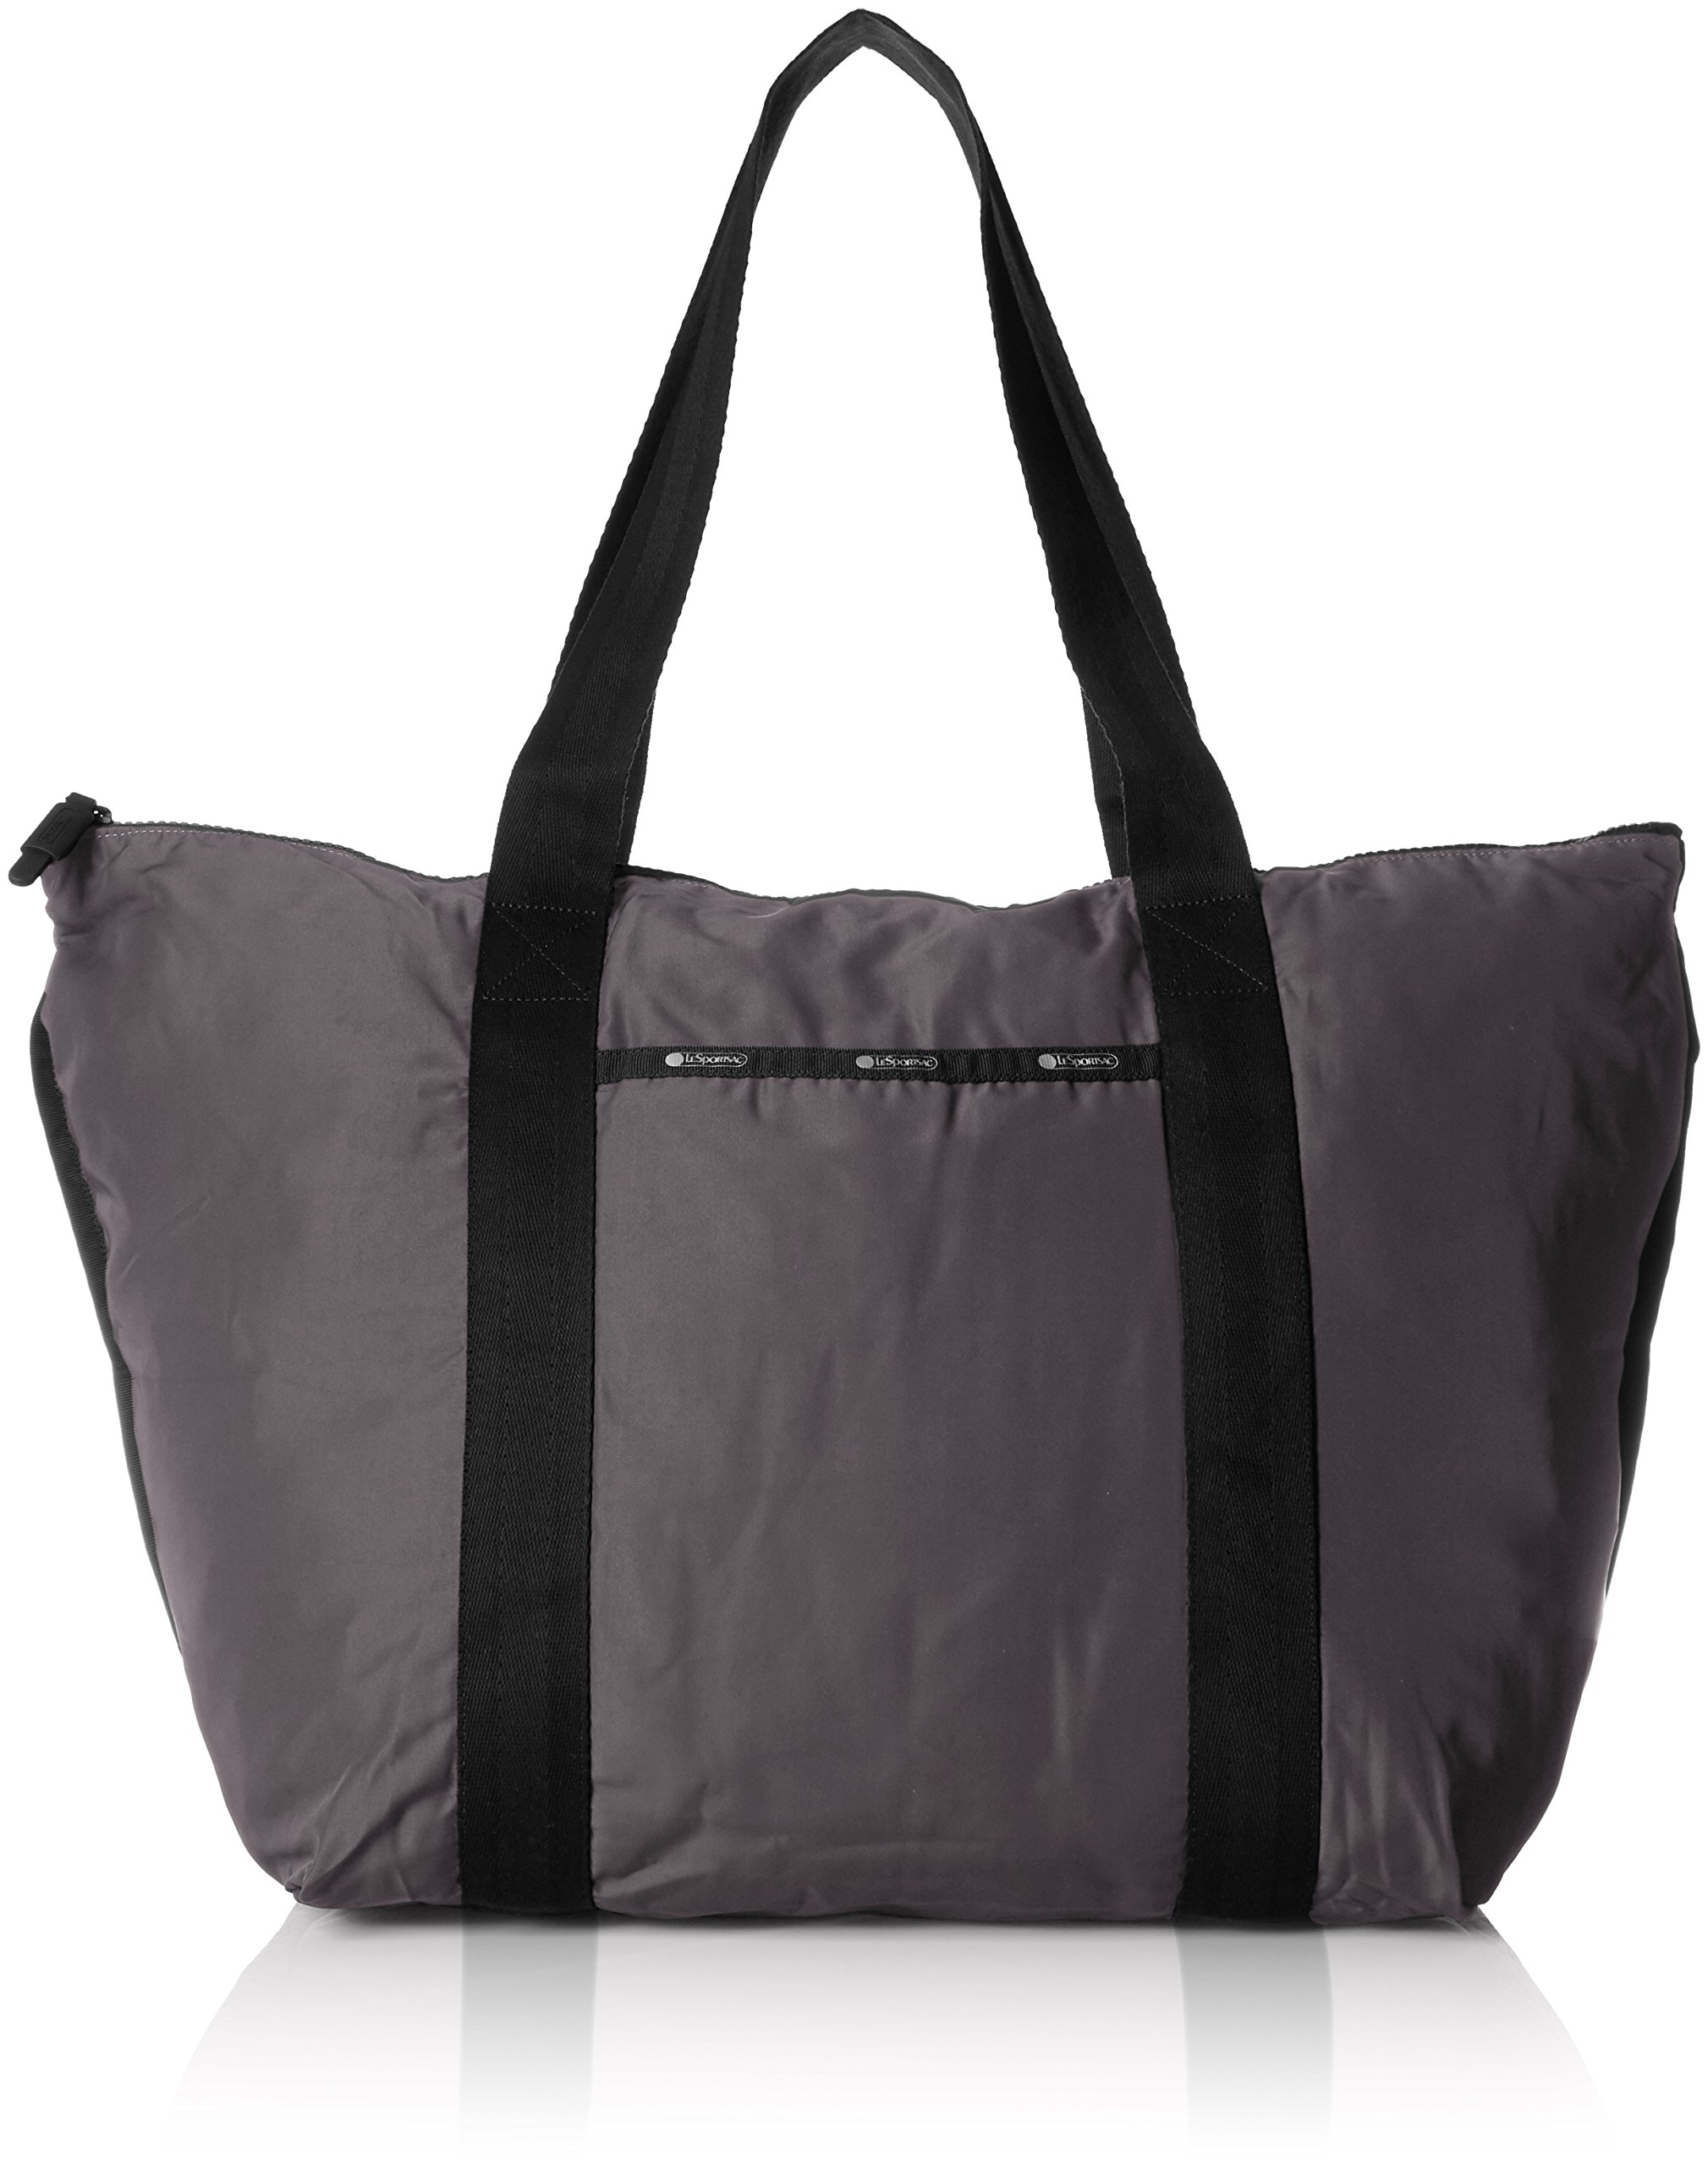 LeSportsac Travel Large on the Go Tote, Shadow t